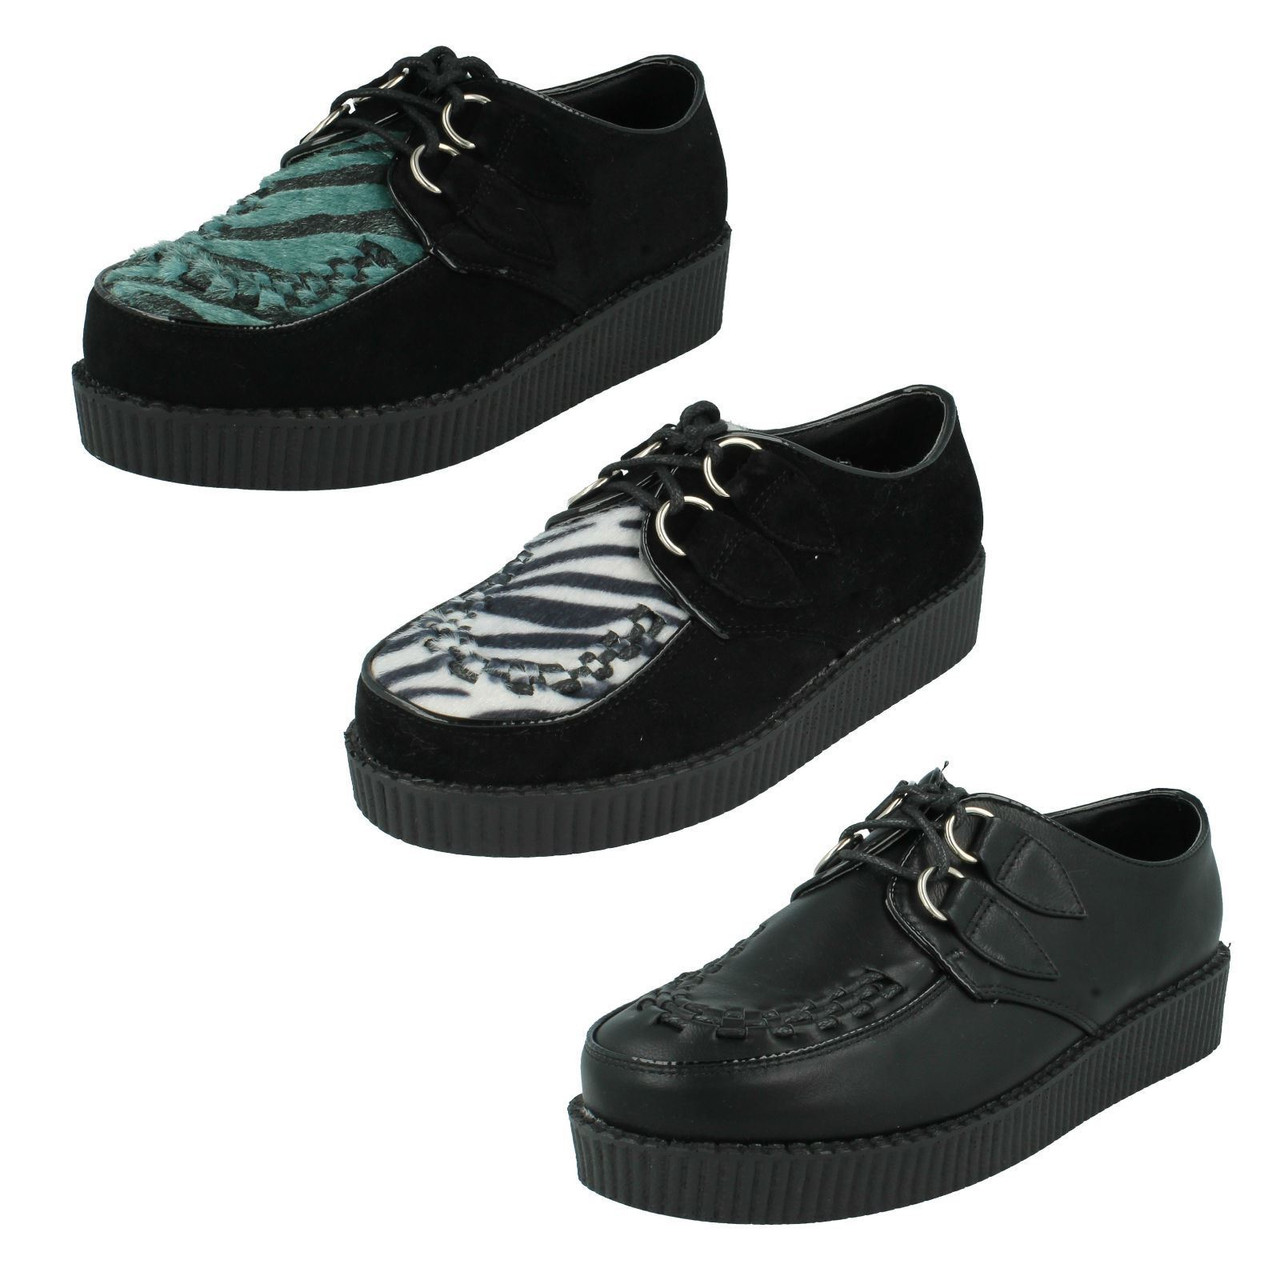 Ladies Spot On Platform Lace Up Shoes